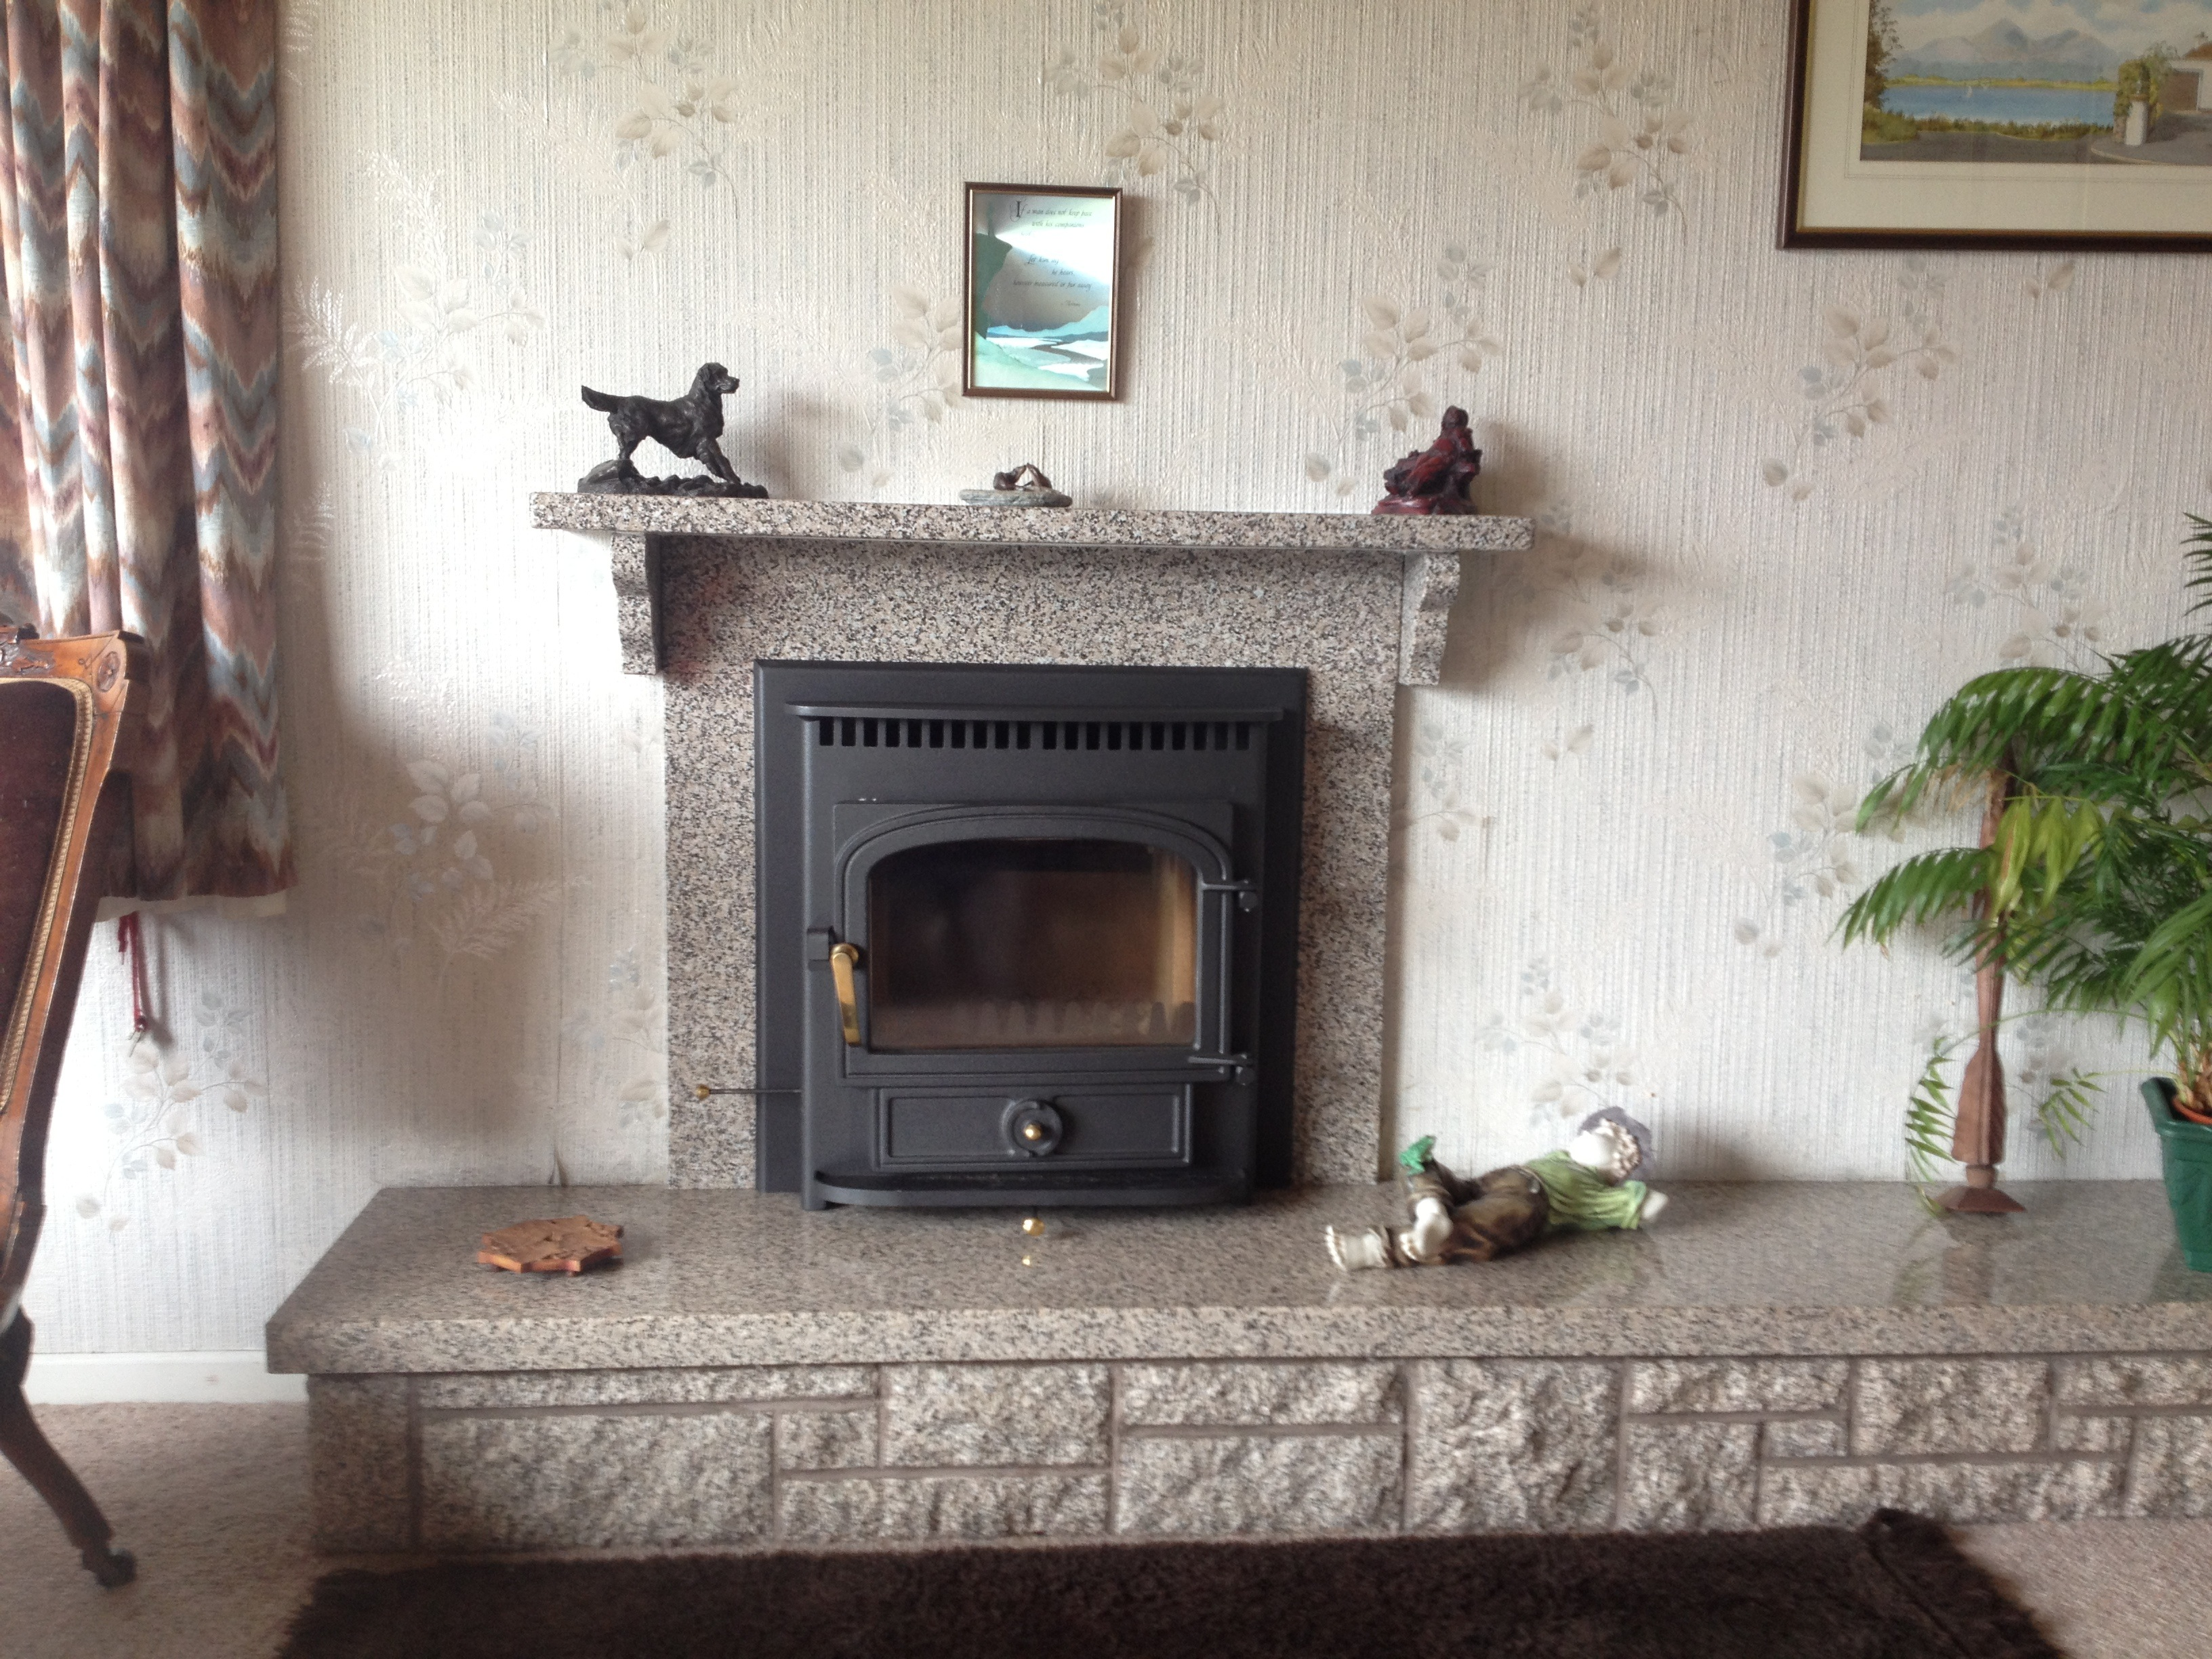 Inset in fireplace